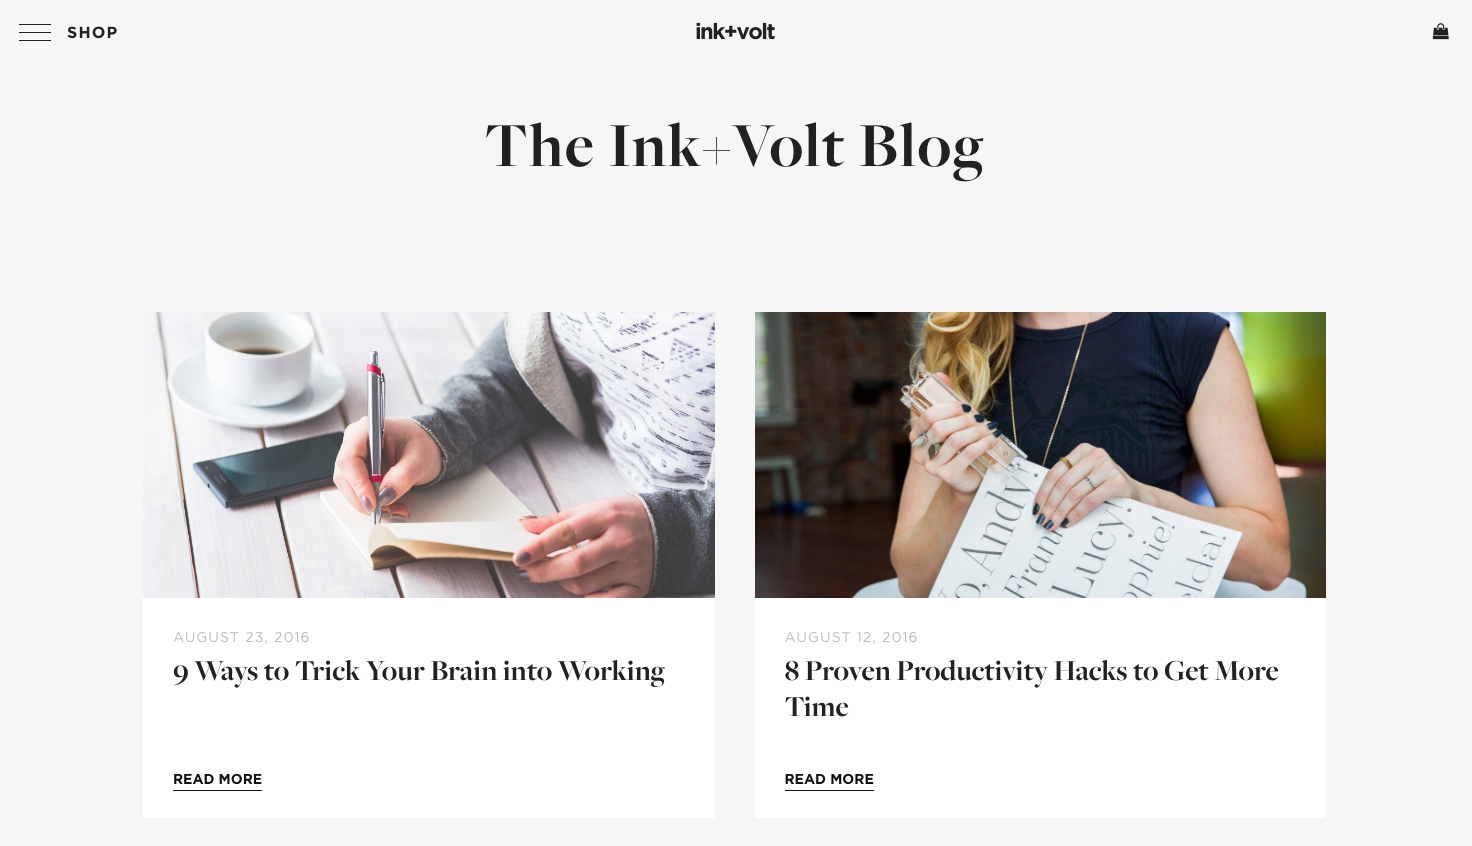 best-blog-page-ink+volt